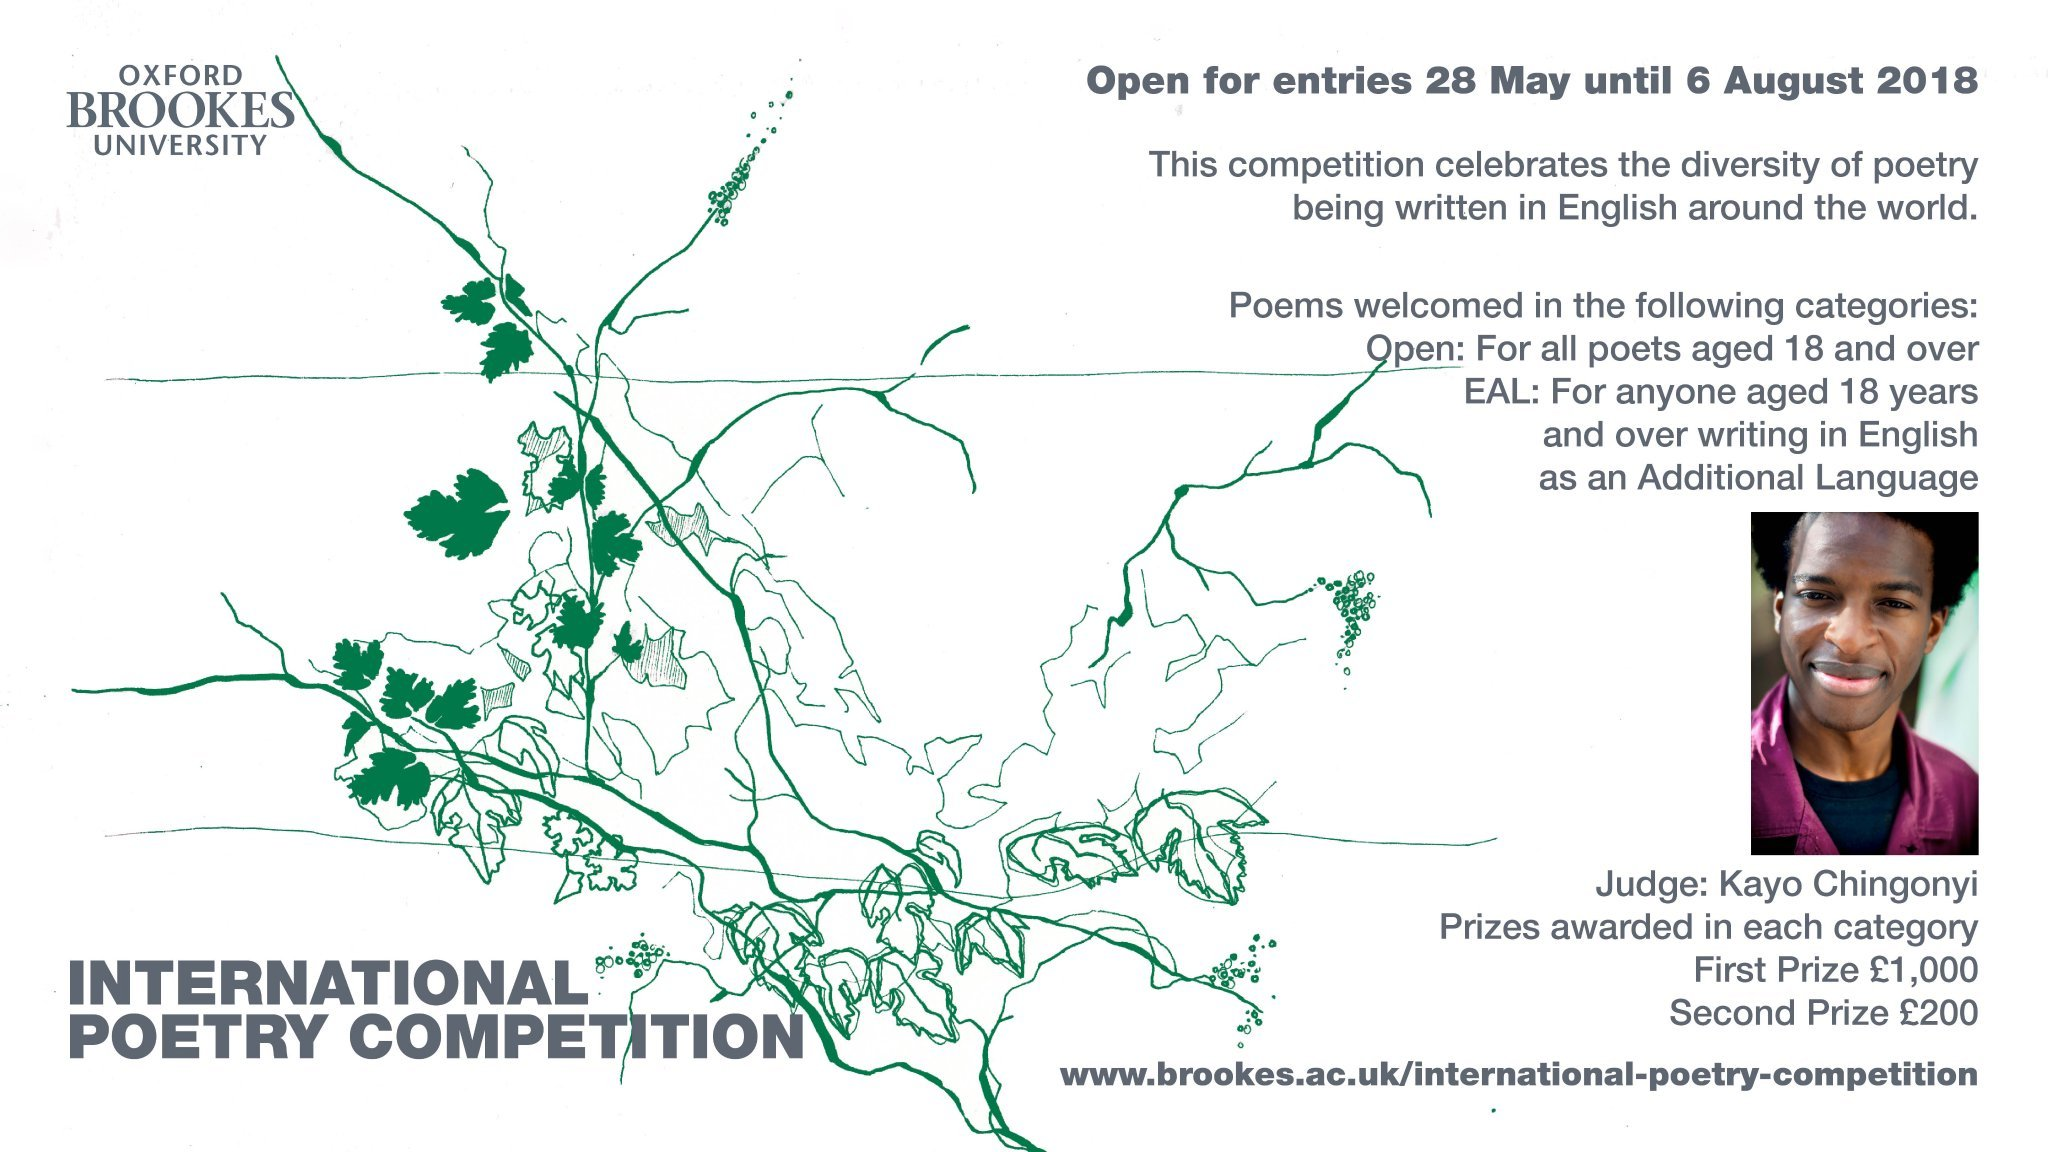 Oxford Brookes Poetry Centre 2018 International Poetry Competition